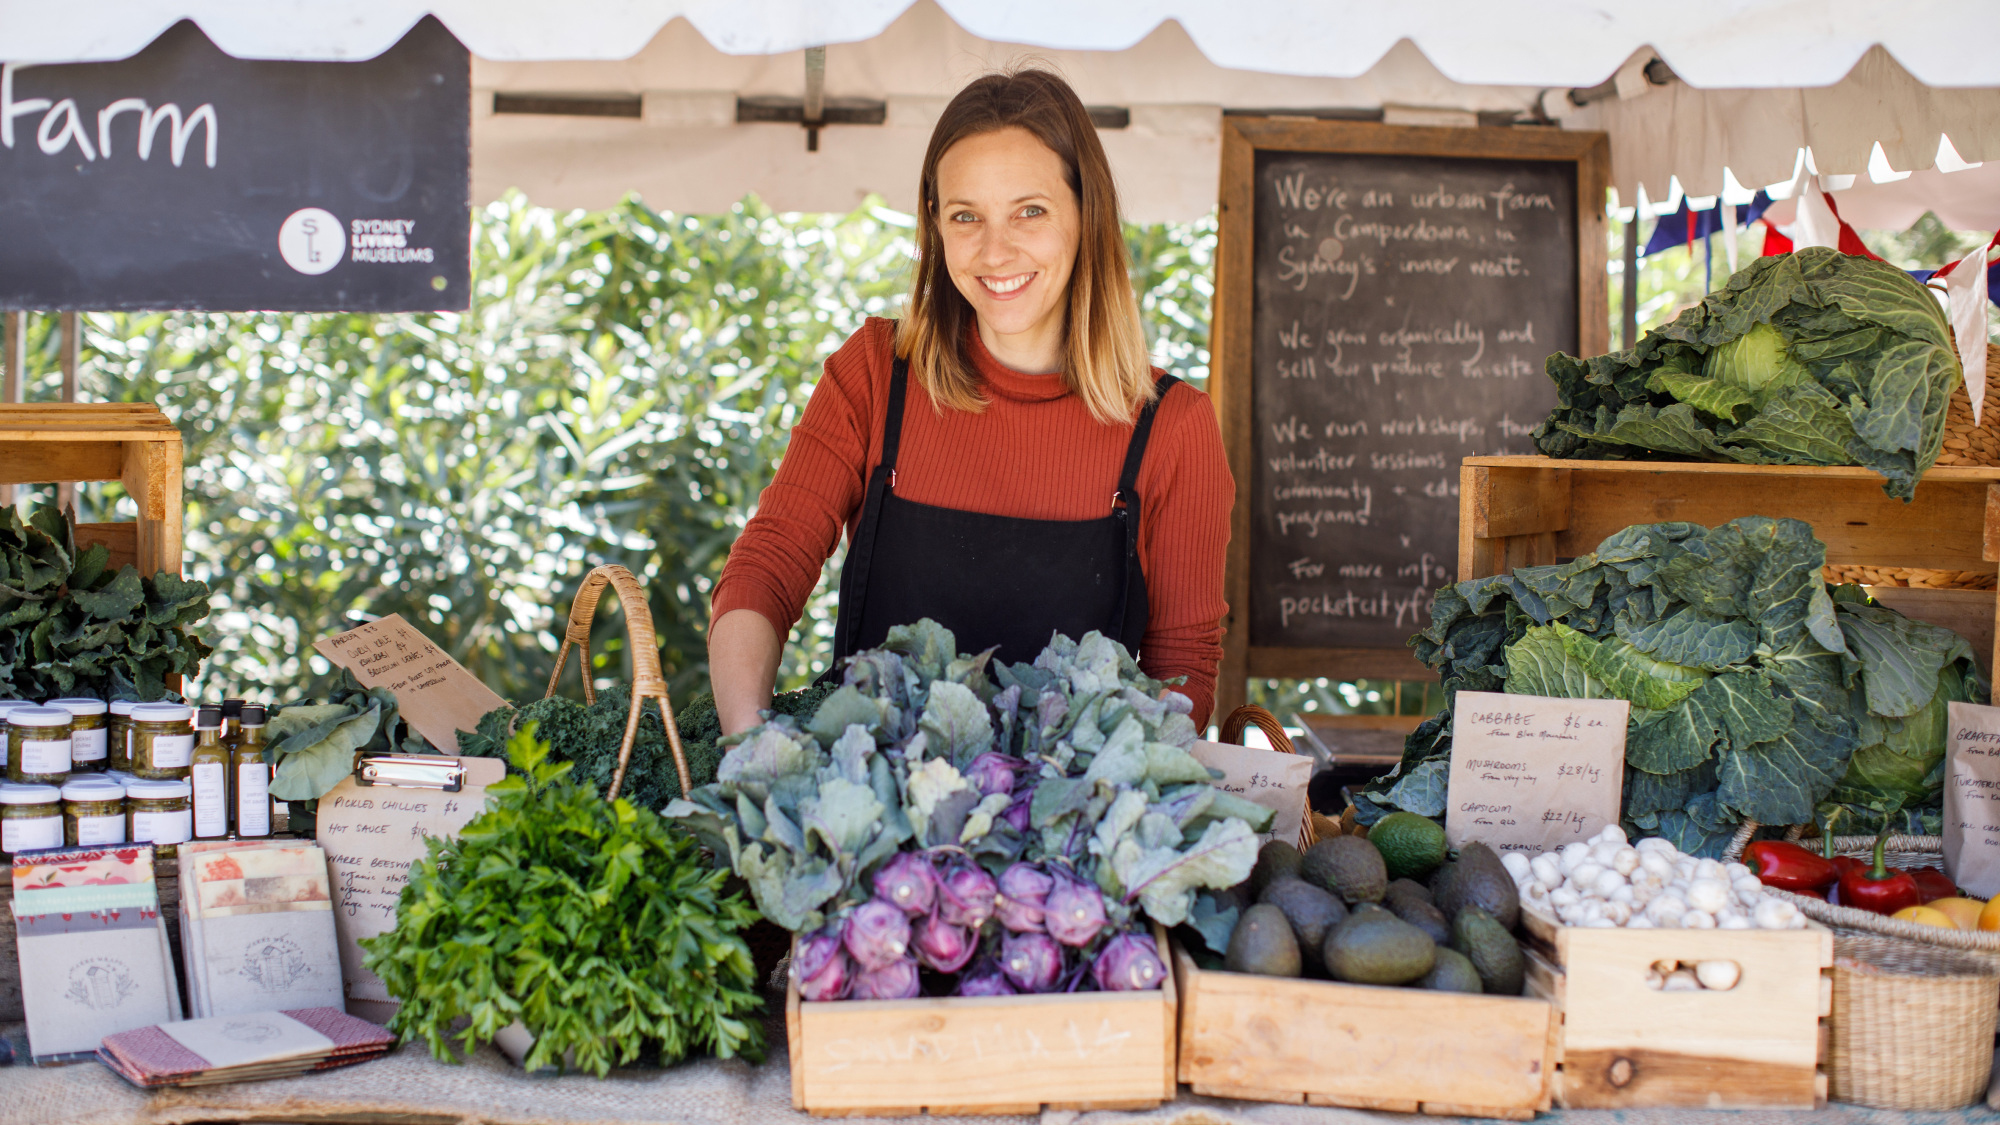 Woman at stall with fresh vegetables and other produce.